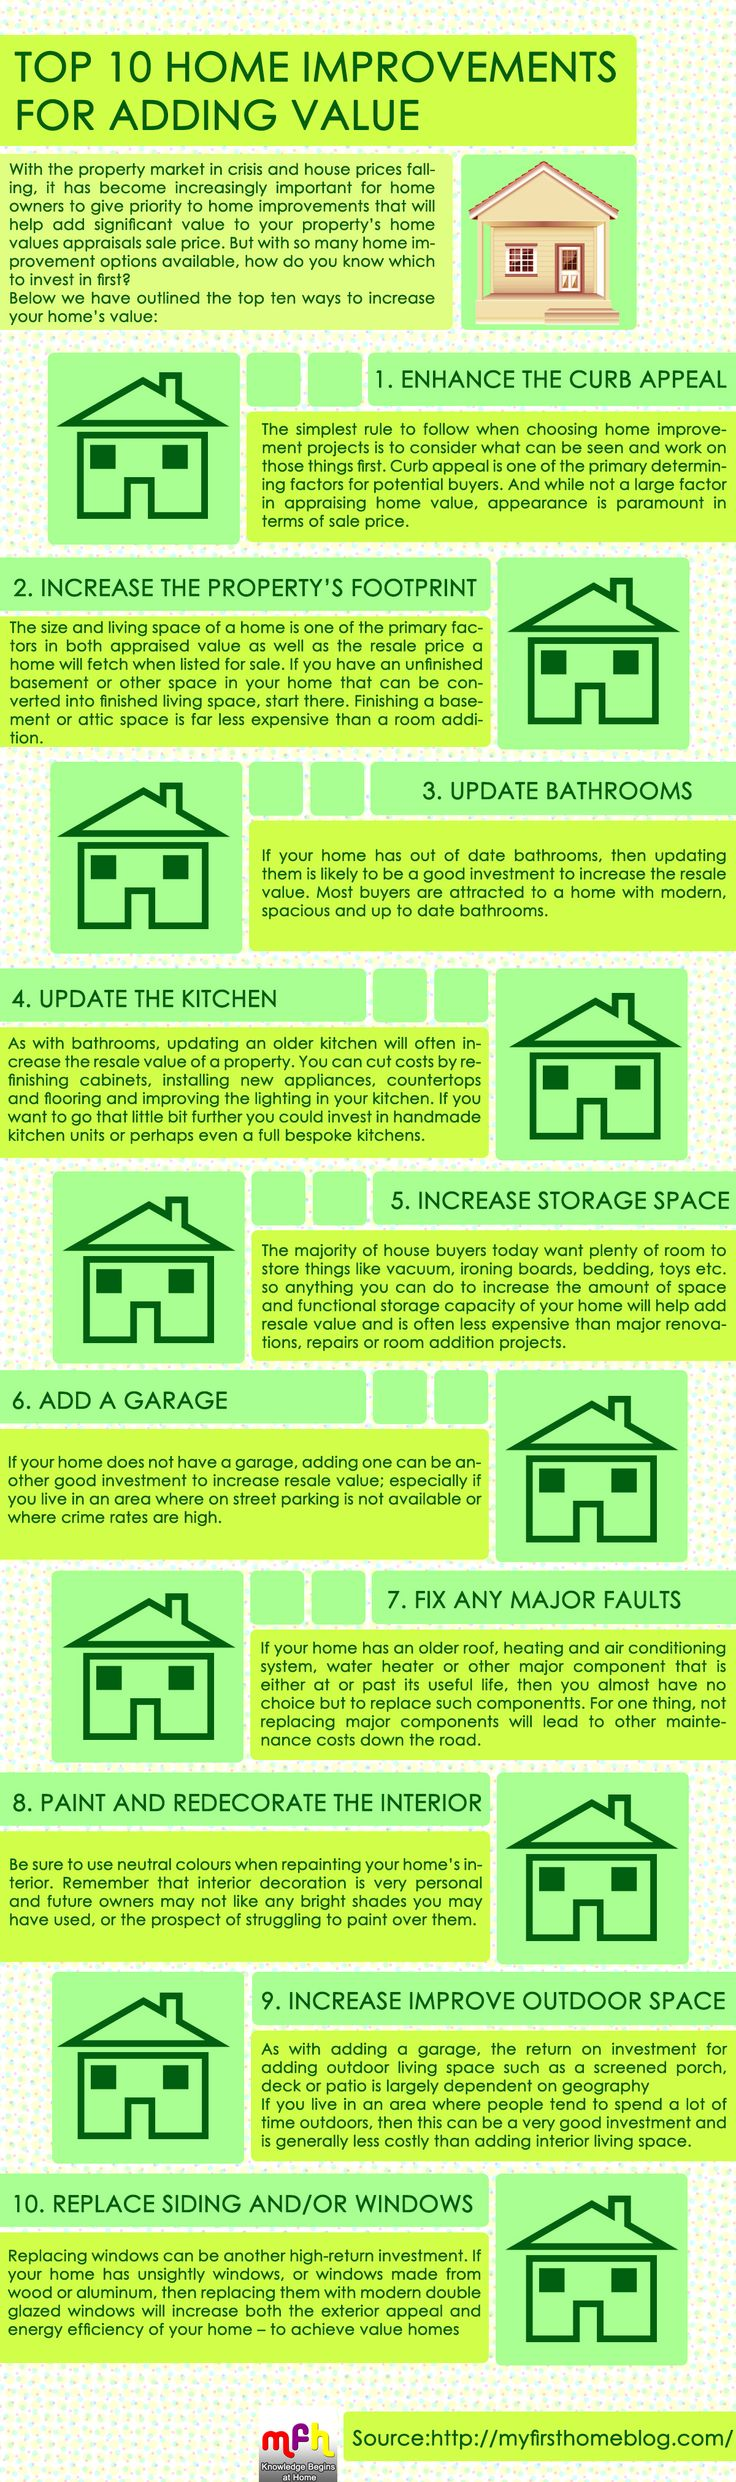 Top 10 Home Improvements For Adding Value With the property market in crisis and house prices falling, it has become increasingly important for home owners to give priority to home improvements that will help add significant value to your property's home values appraisals sale price. But with so many home improvement options available, how do you know which to invest in first?  http://myfirstho.me http://myfirsthomeblog.com http://facebook.com/MyFirstHomeCommunity